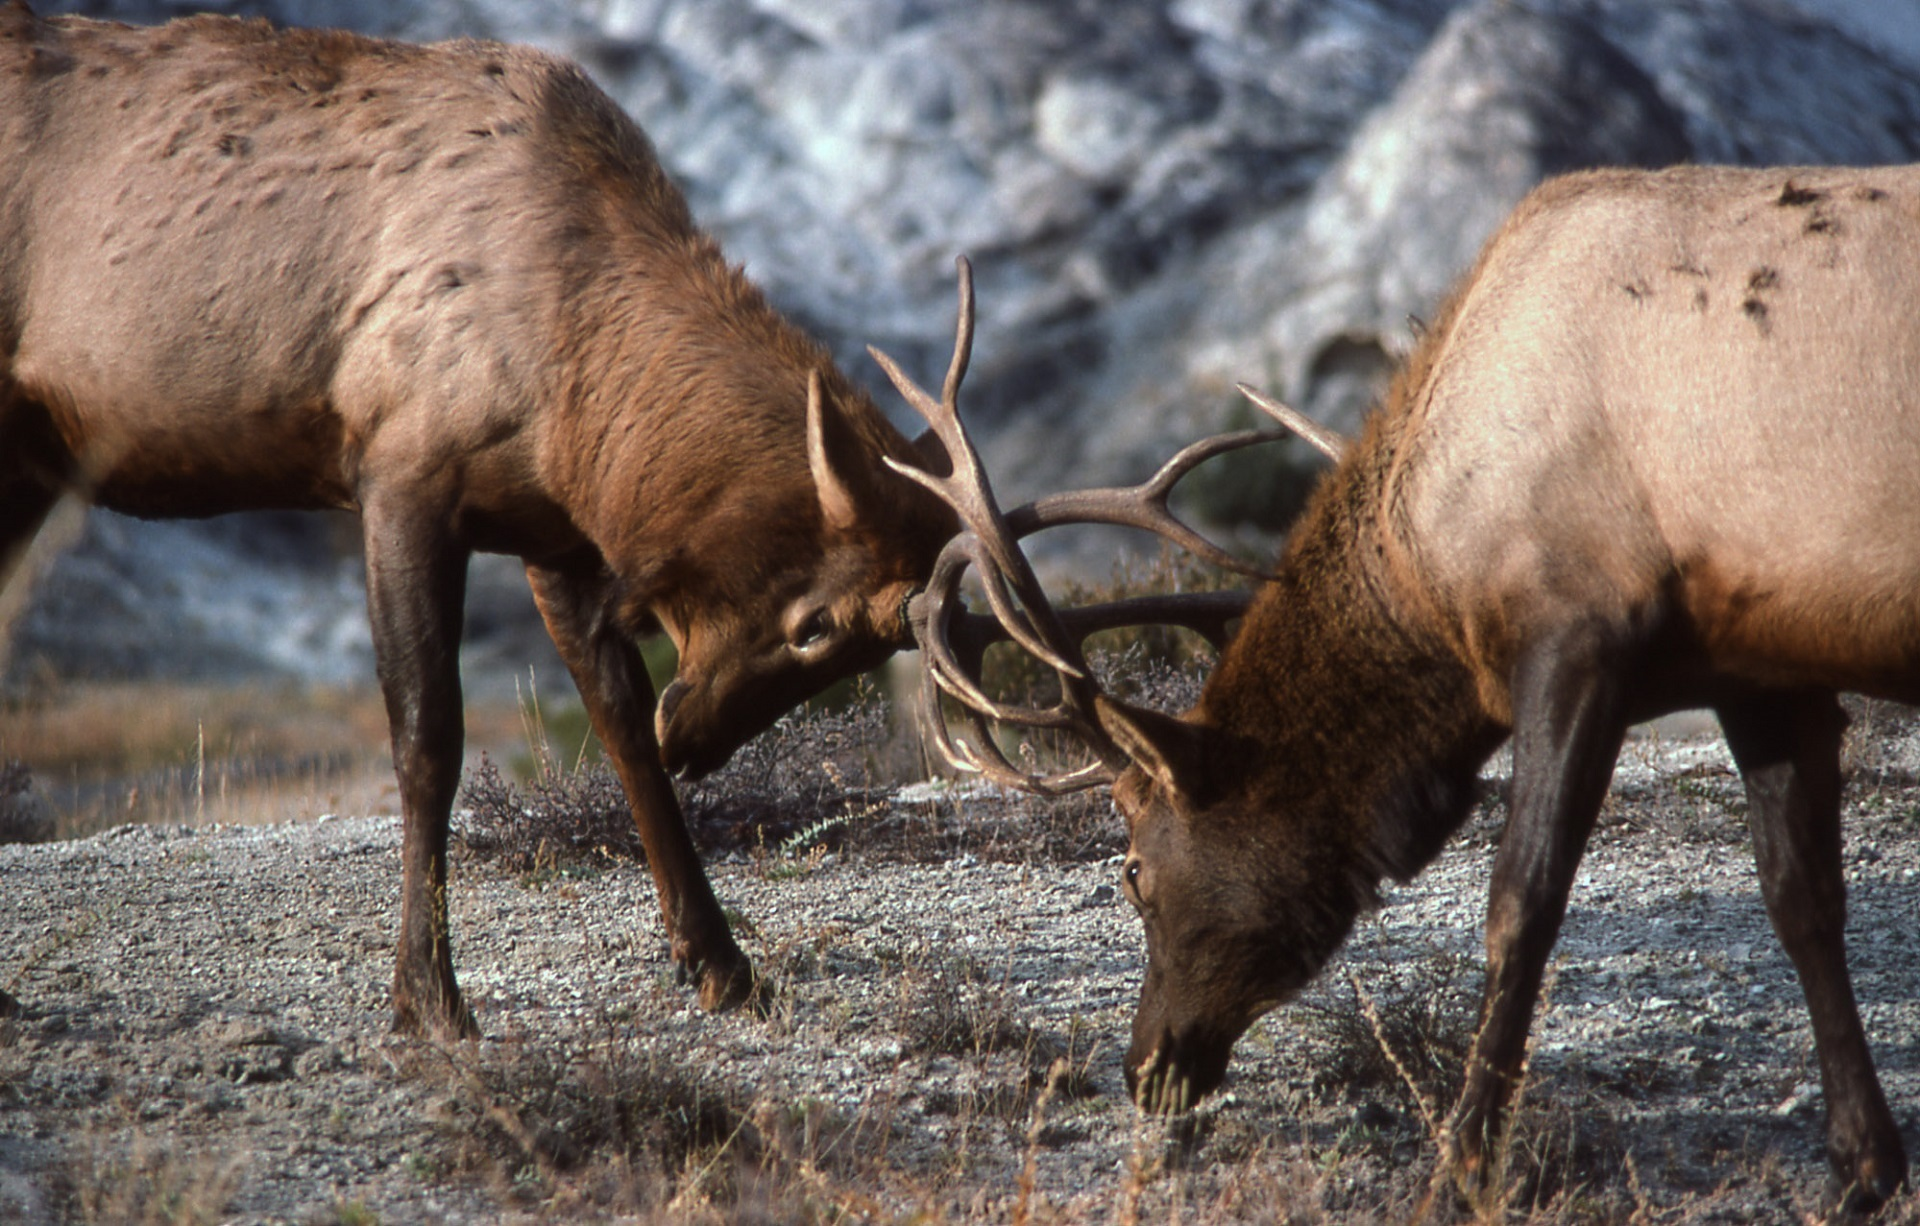 Bull Elk Fight, Animal, Battle, Bull, Elk, HQ Photo